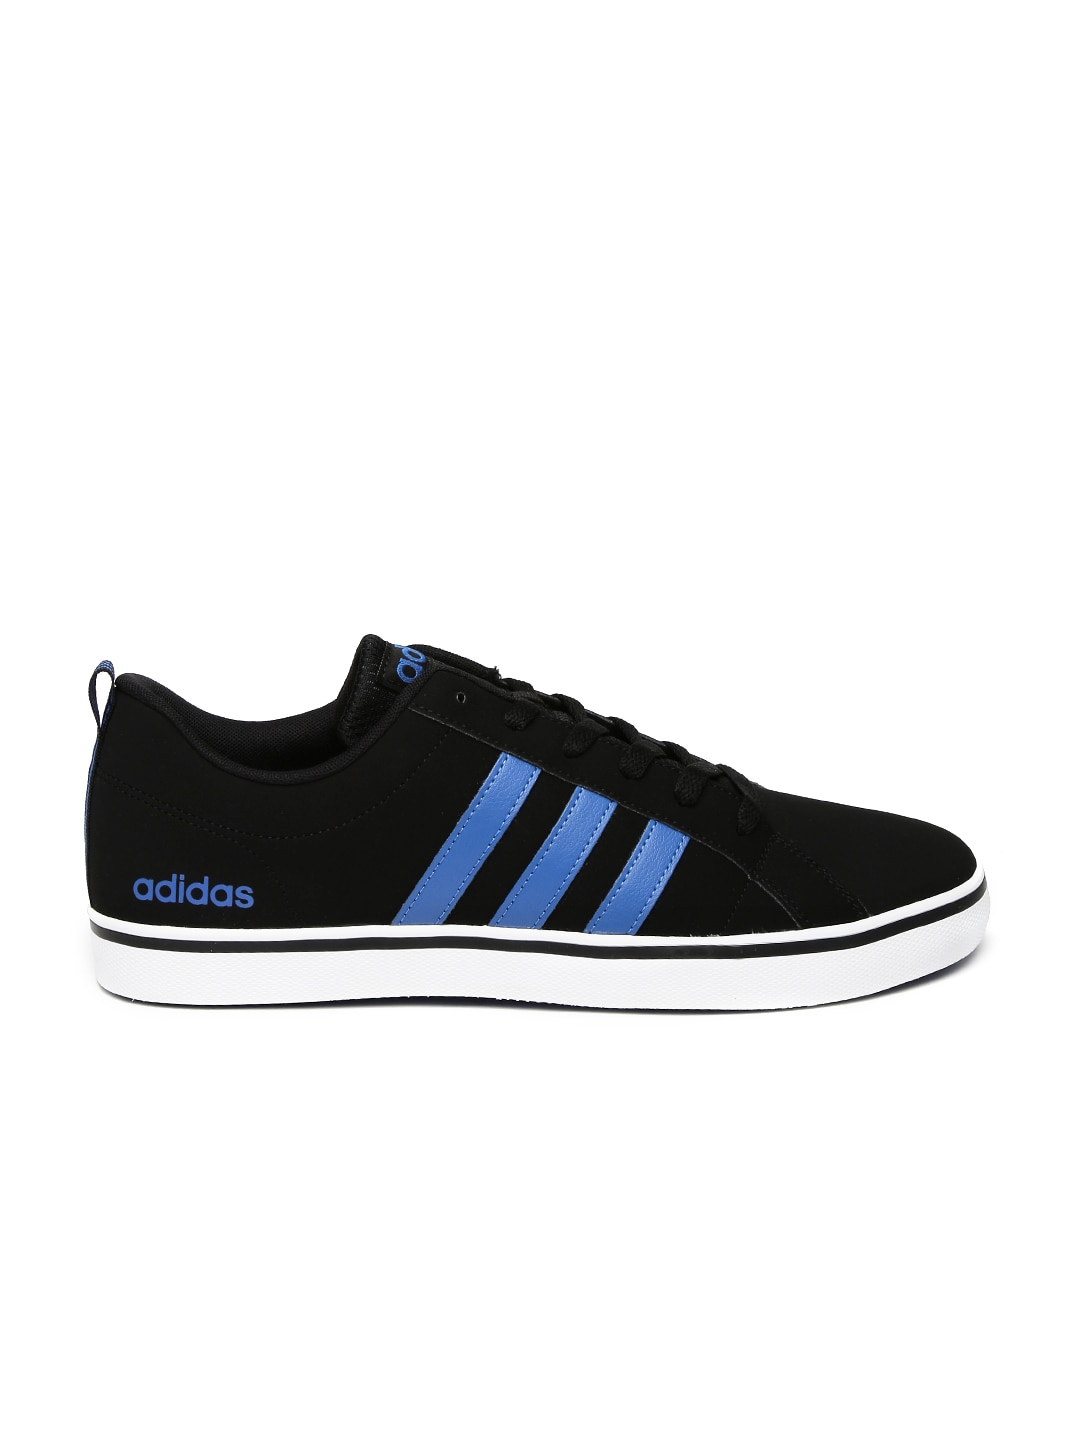 adidas sneakers sale india blue and red kids adidas shoes